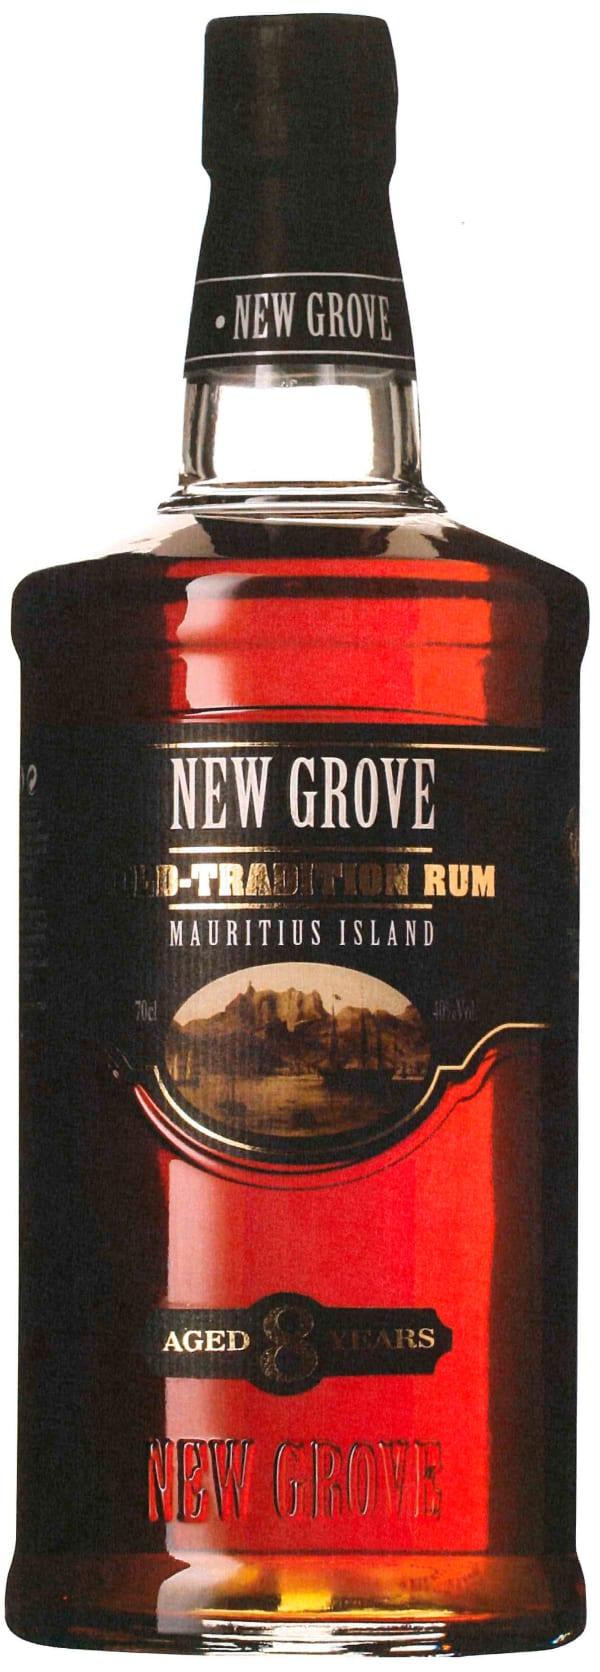 New Grove Old Tradition 8 YO Rum